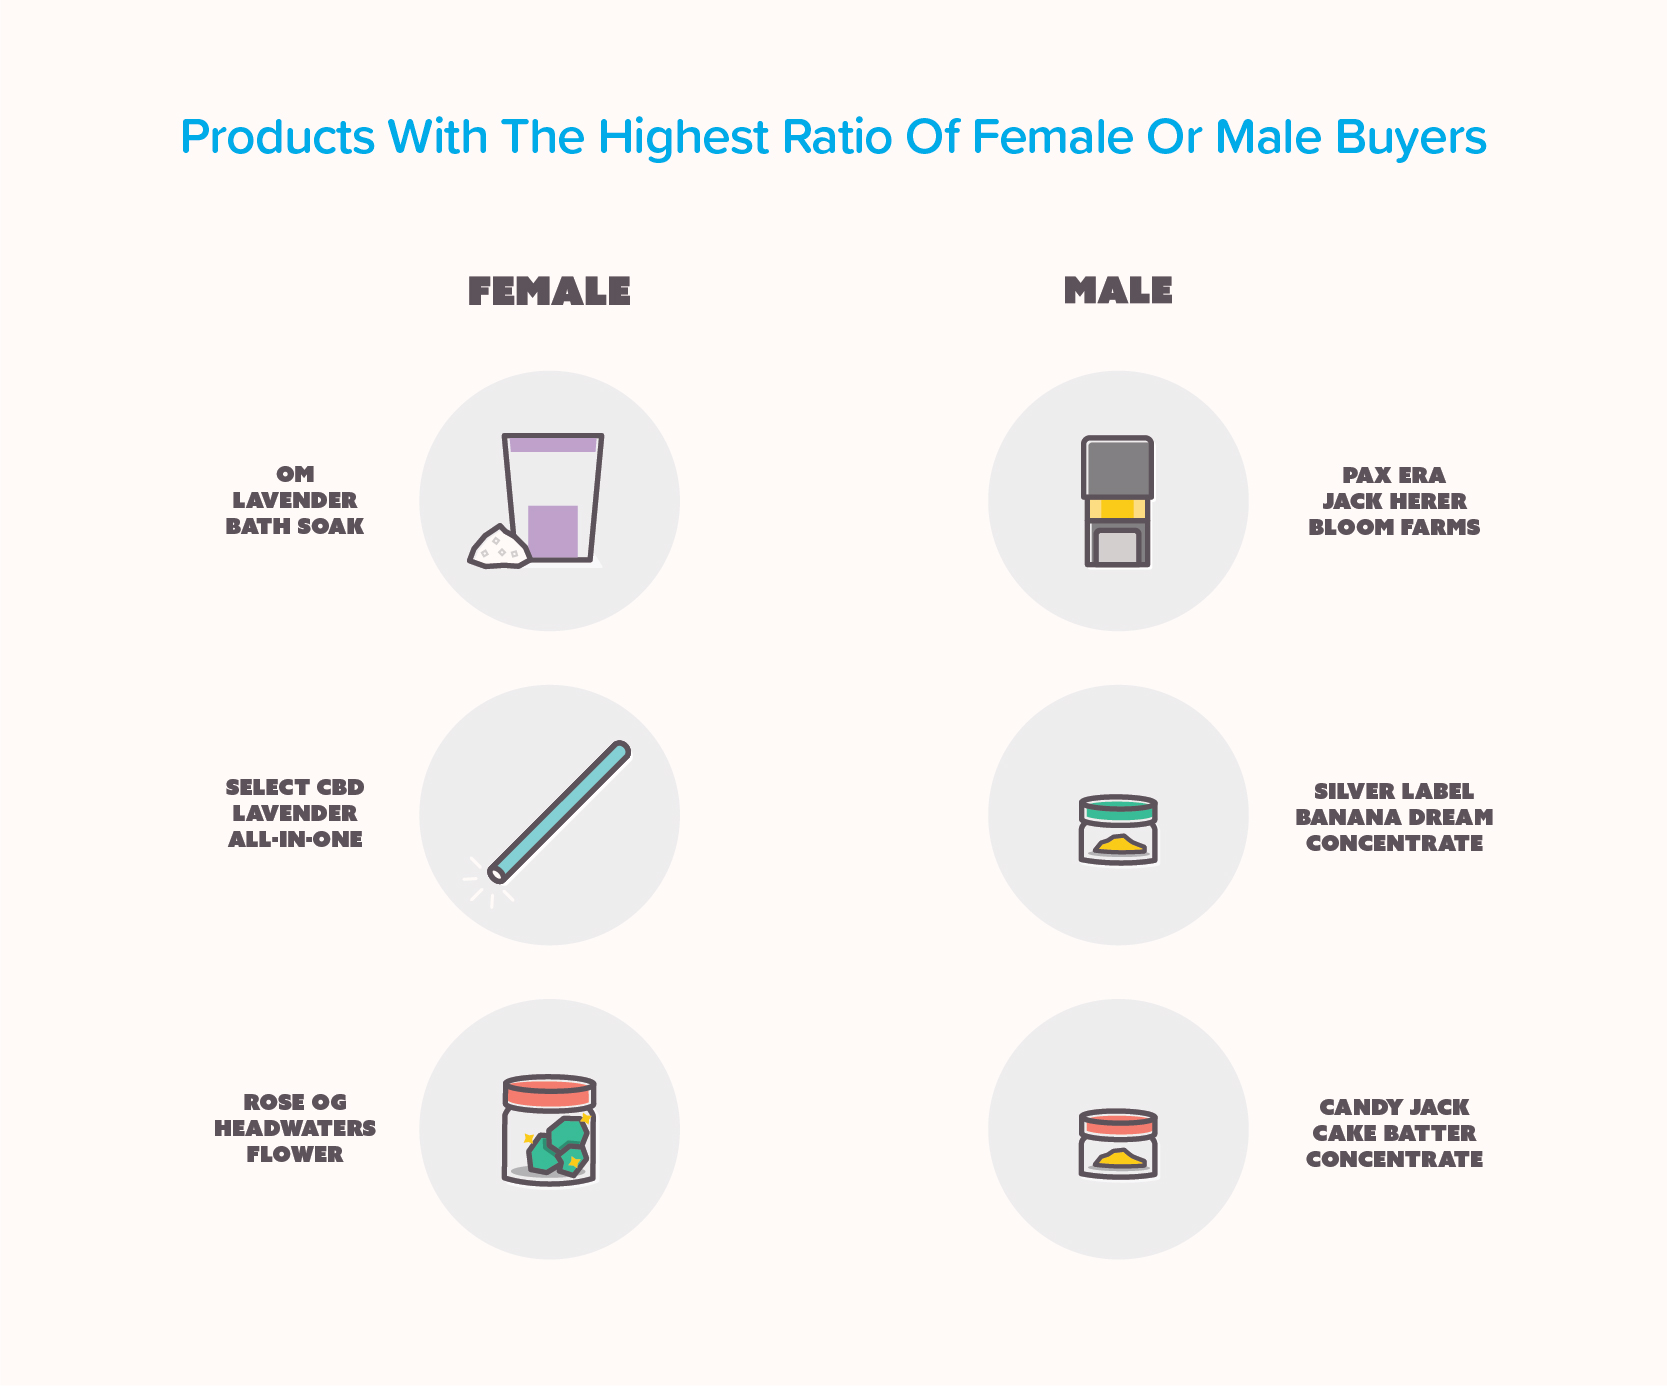 Infographic showing marijuana products with the highest ratio of female or male buyers